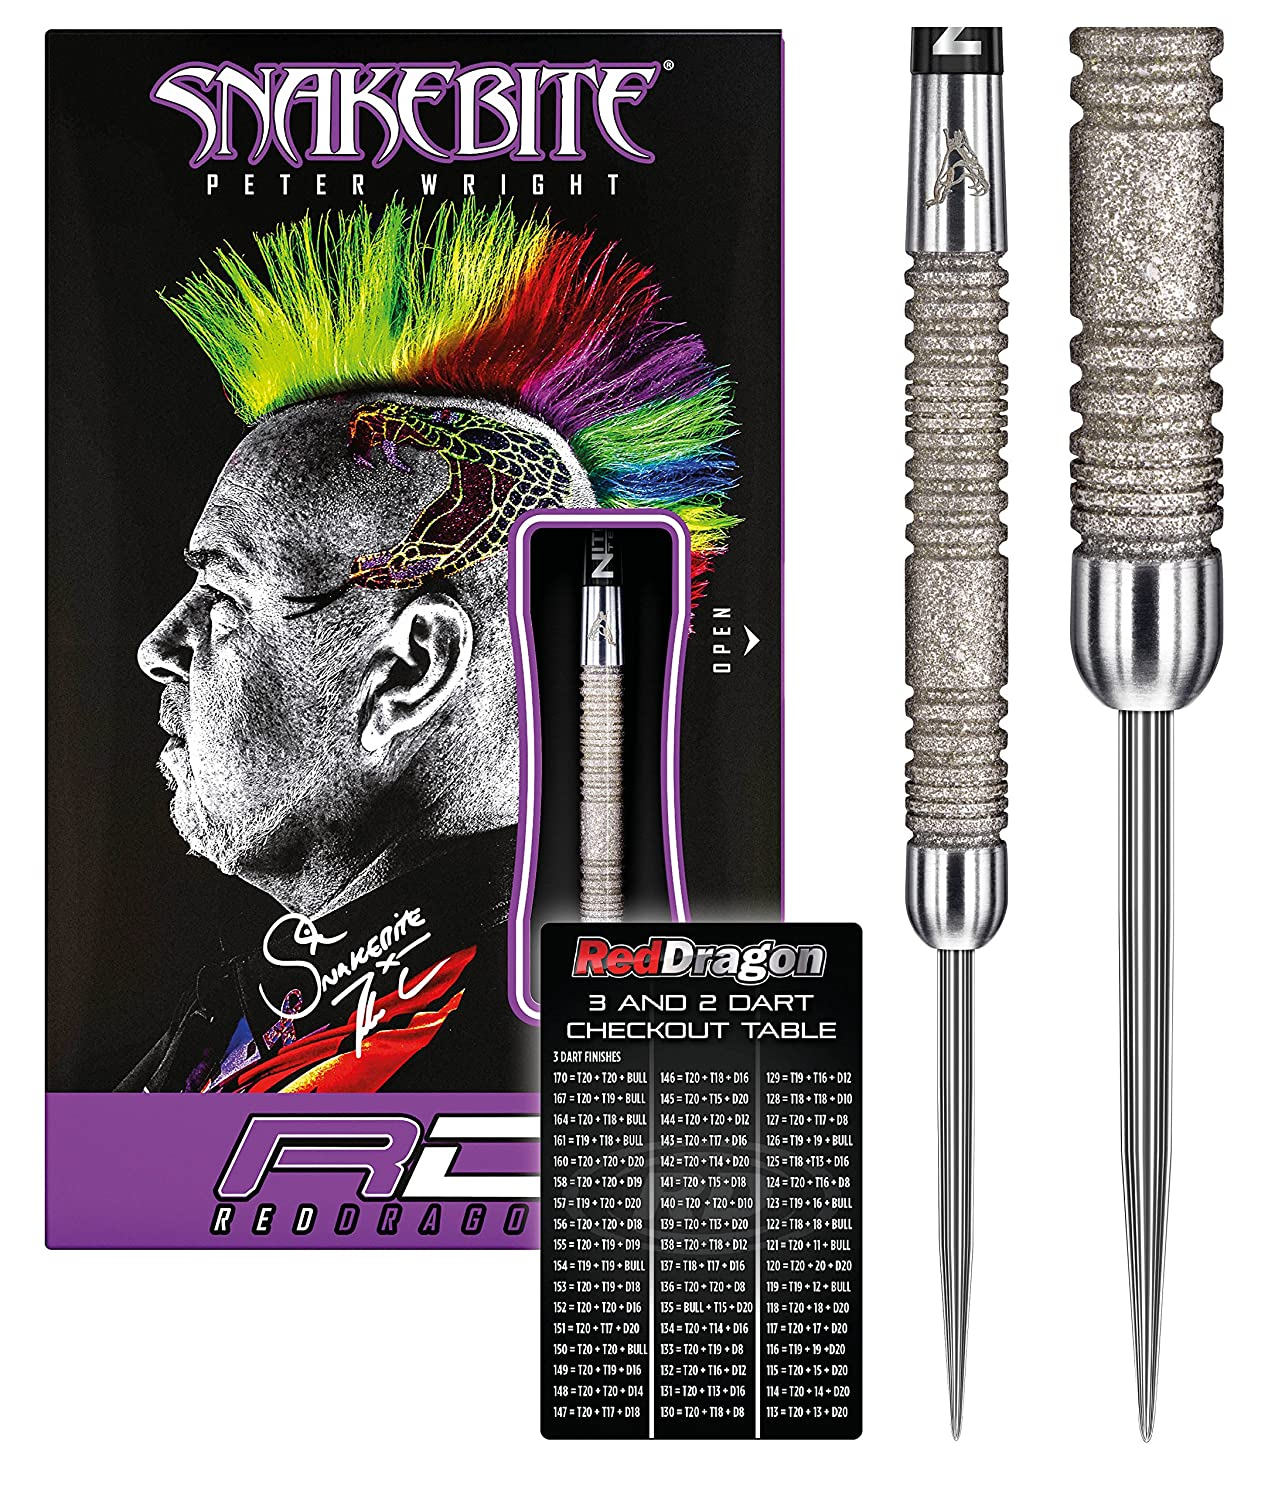 Red Dragon Peter Wright Snakebite Euro 11 Element: 20g - Prima Dardos de Acero con Plumas, eje de dardos & Red Dragon naipe: Amazon.es: Deportes y aire ...